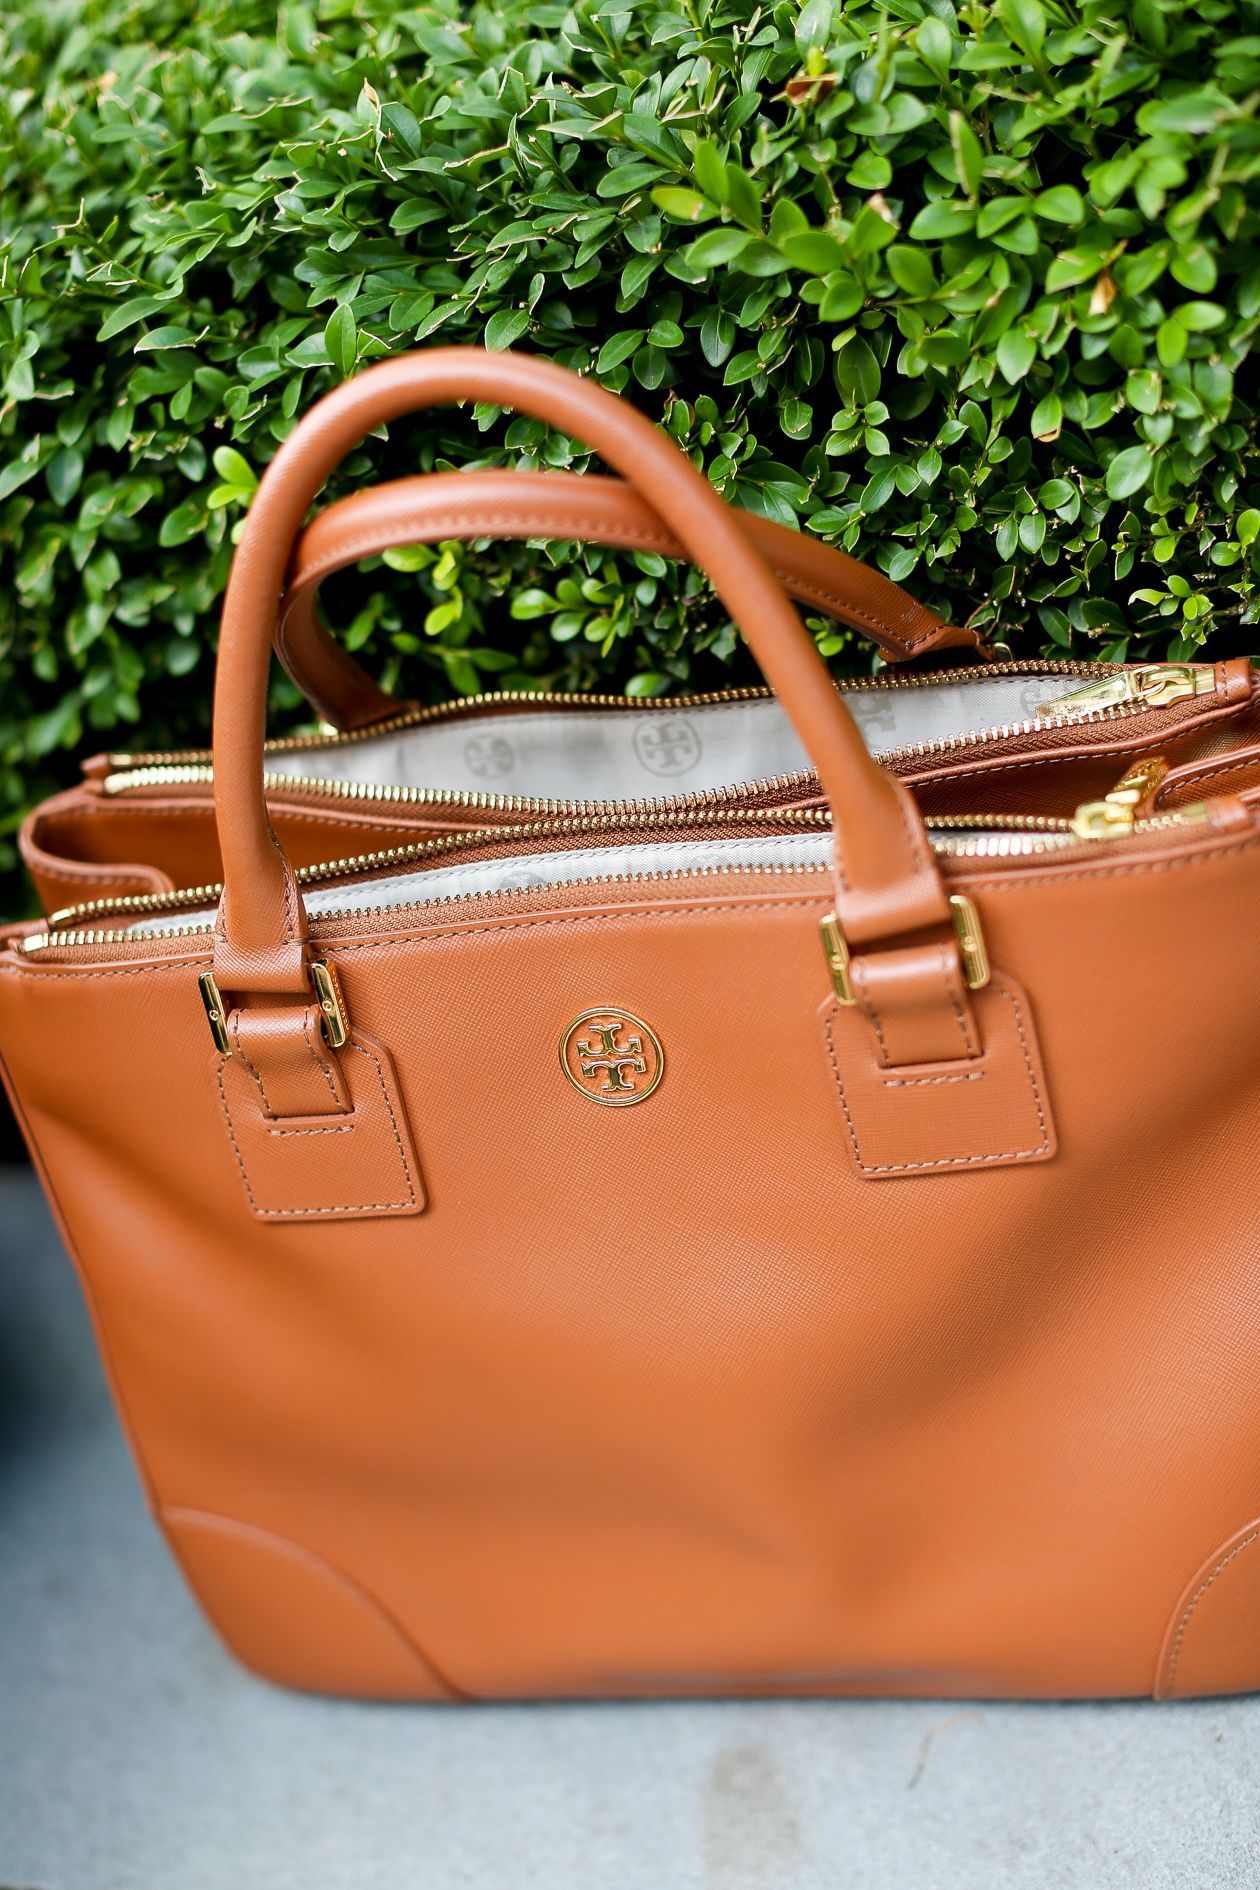 Tory Burch Nordstrom Rack/HauteLook Sale - Kelly in the City